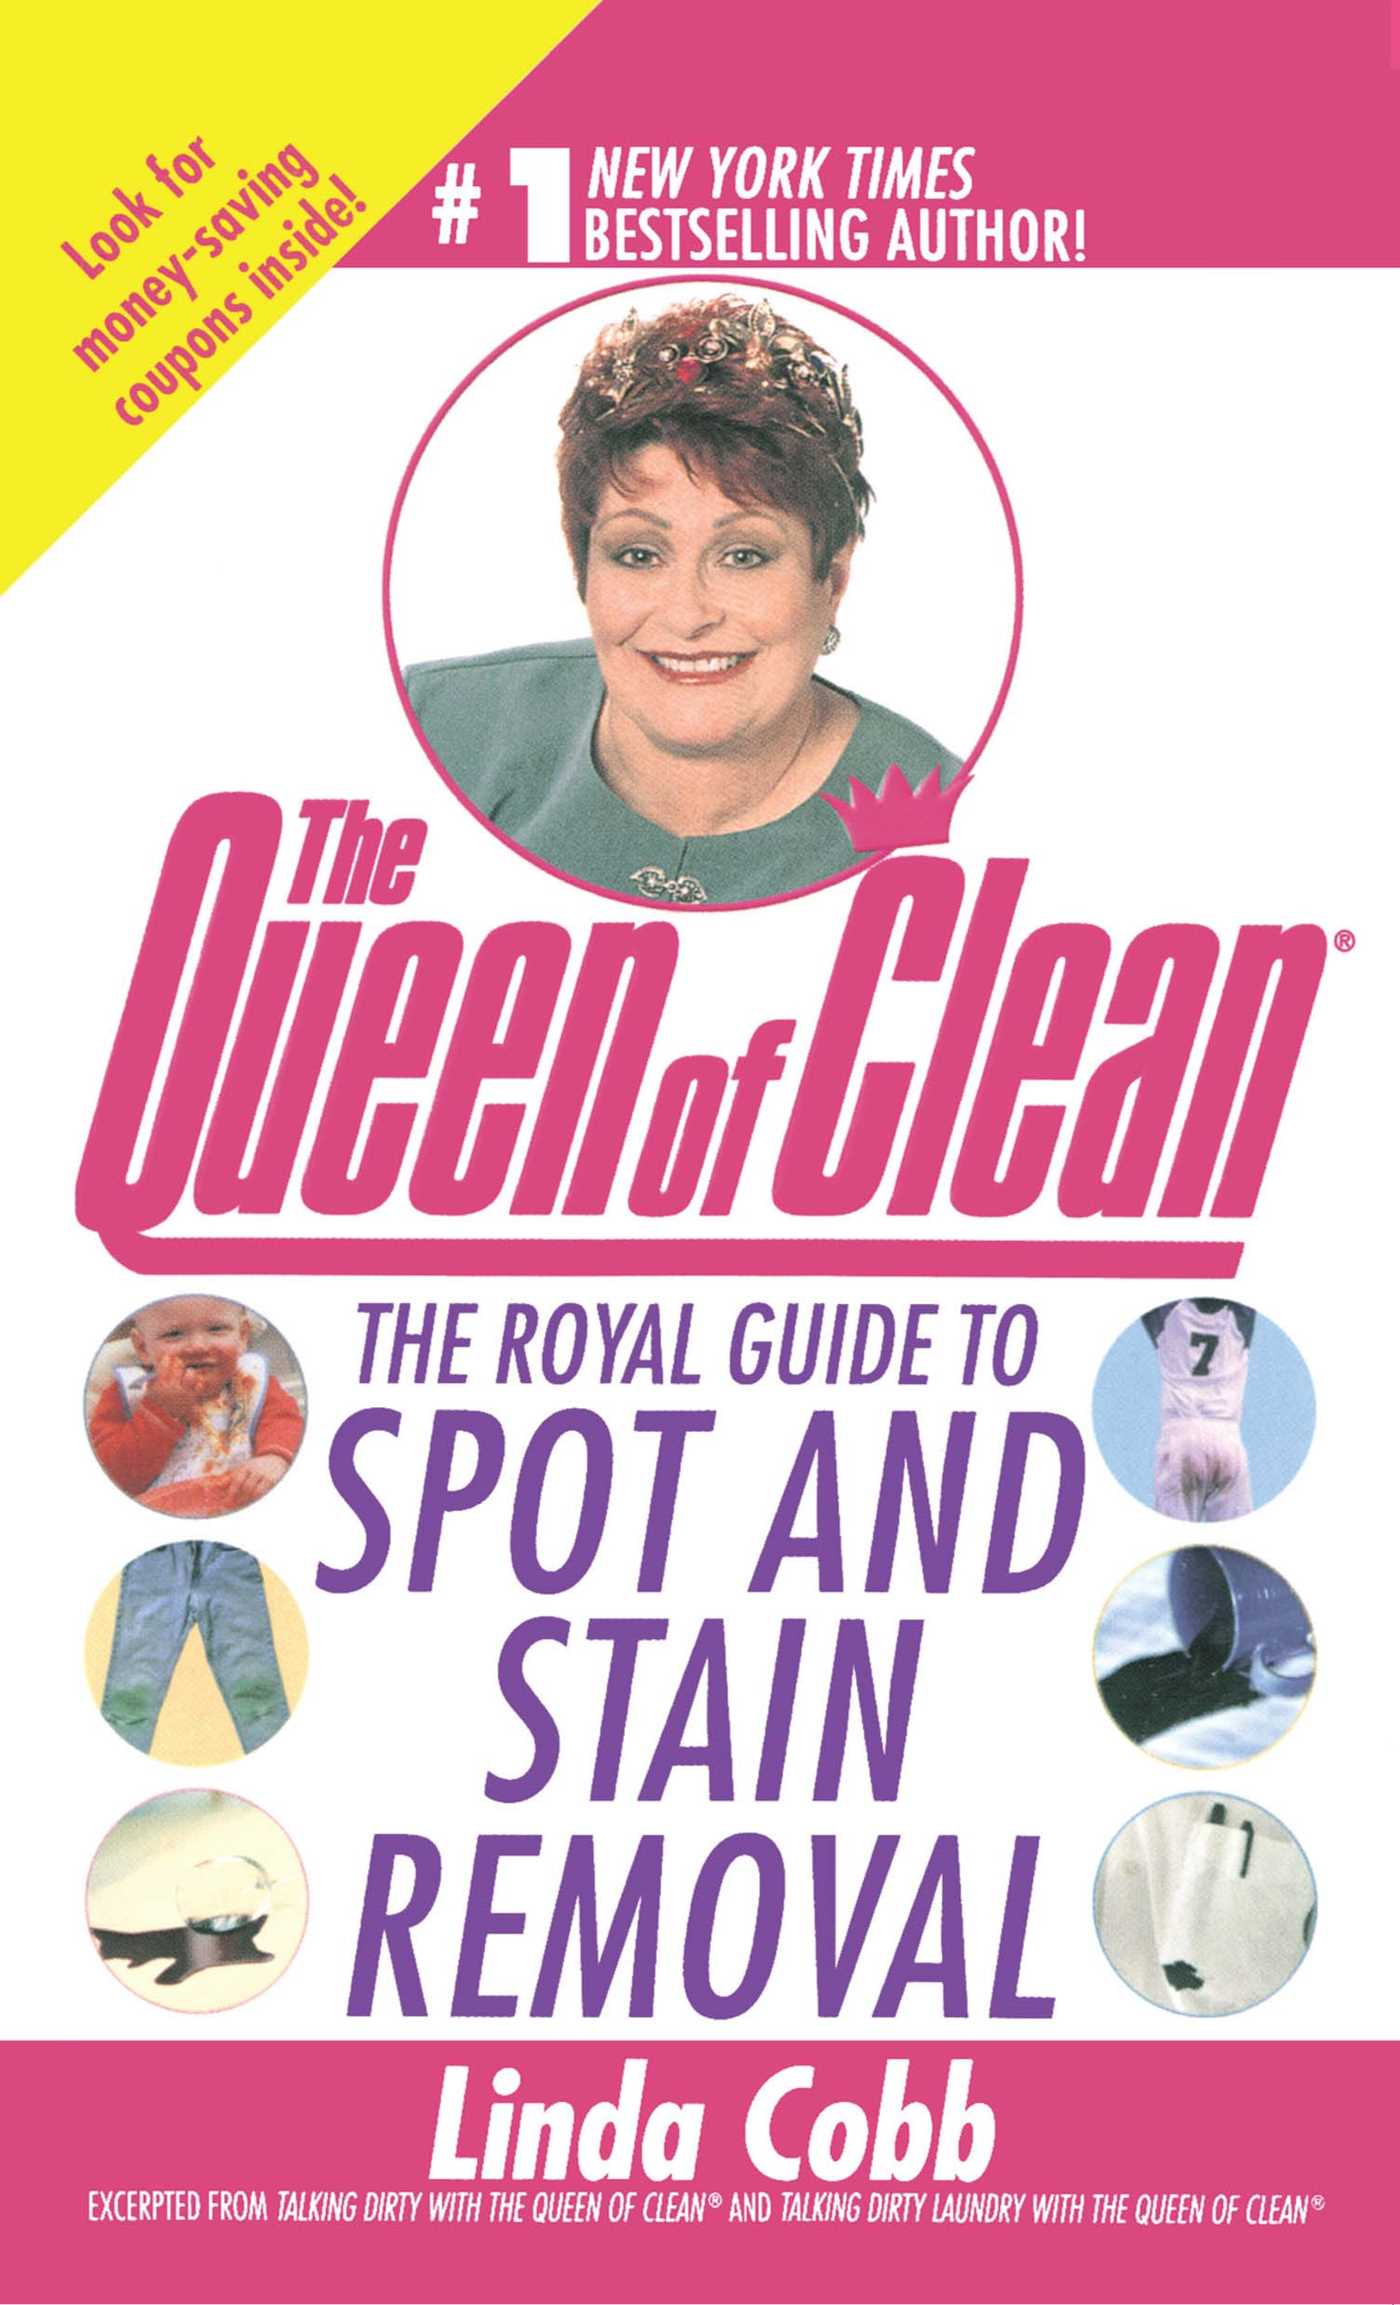 Royal-guide-to-spot-and-stain-removal-9781451604153_hr